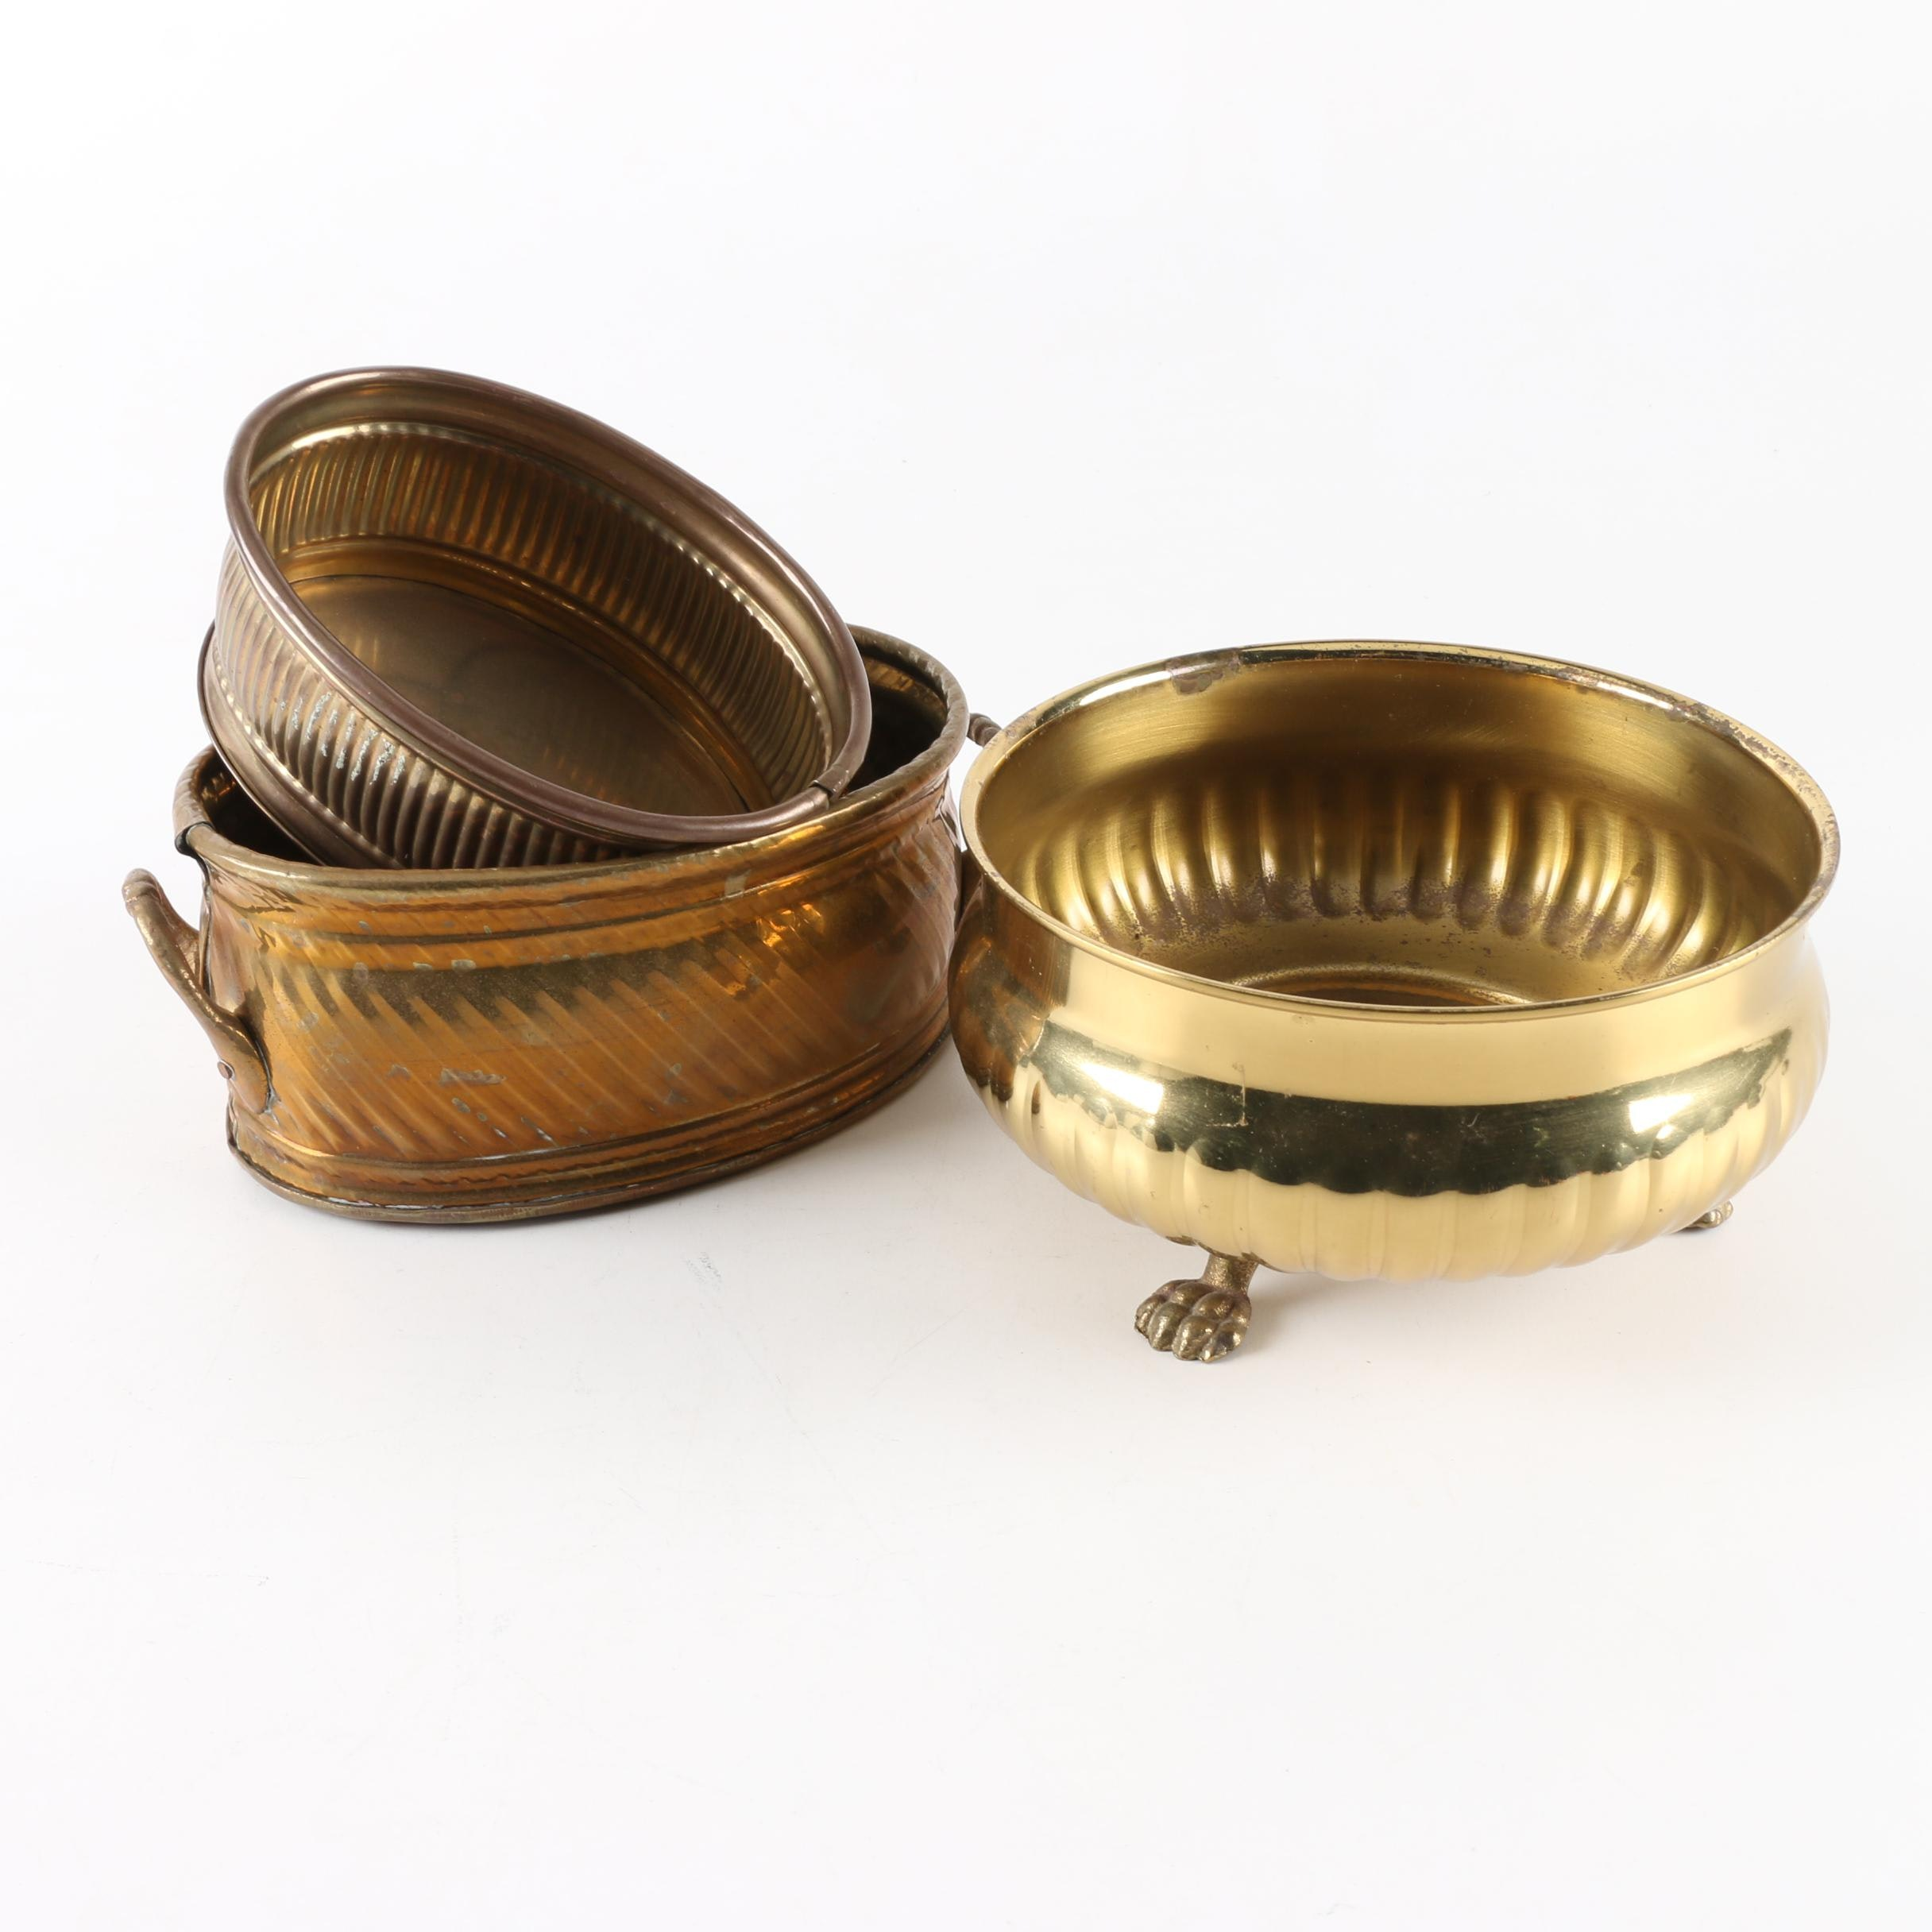 Brass Bowl Containers